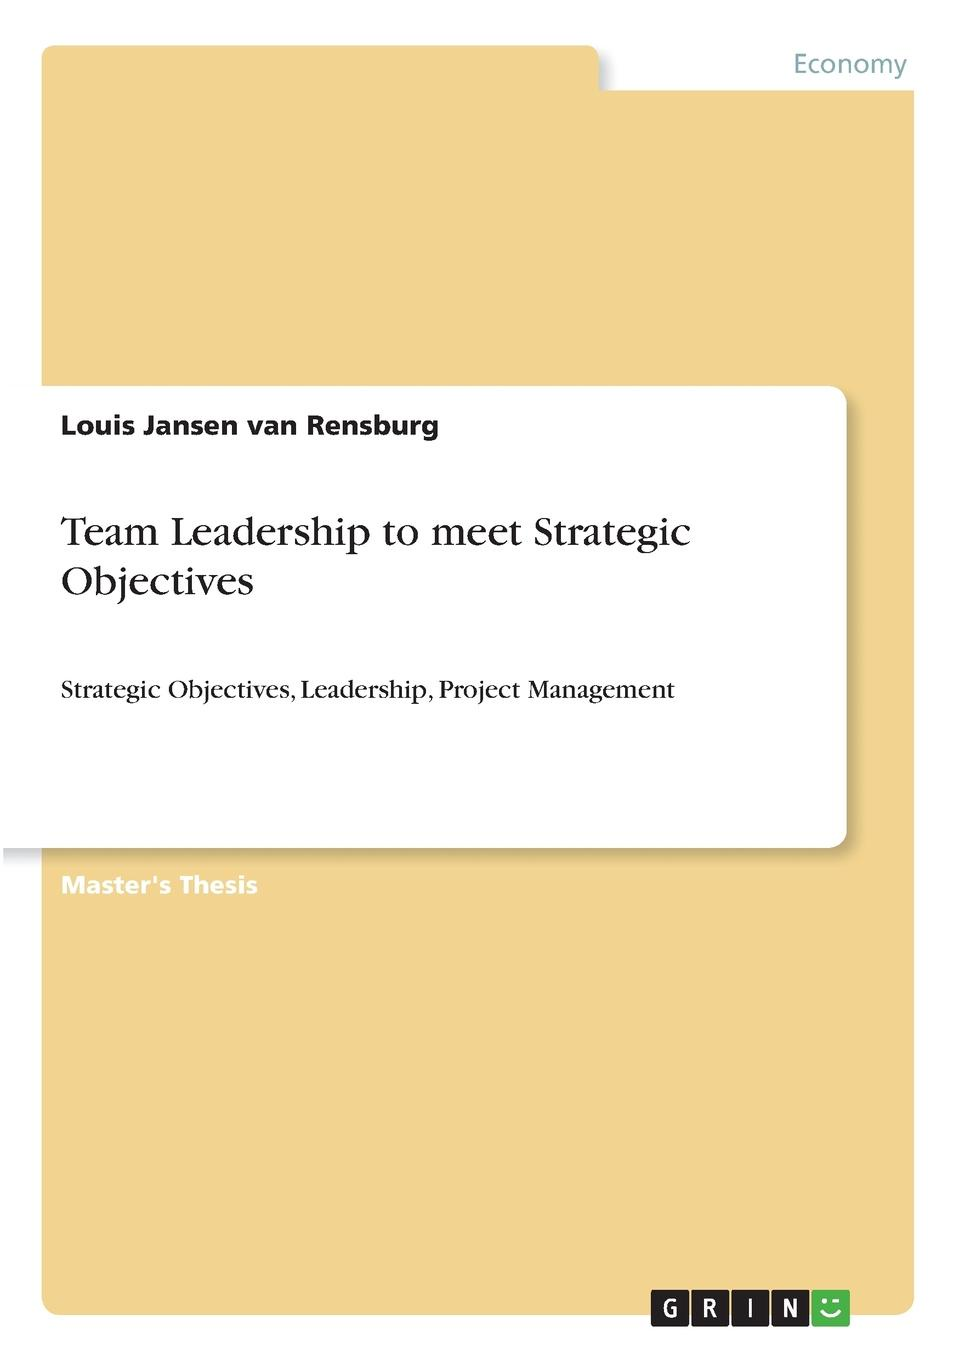 Louis Jansen van Rensburg Team Leadership to meet Strategic Objectives